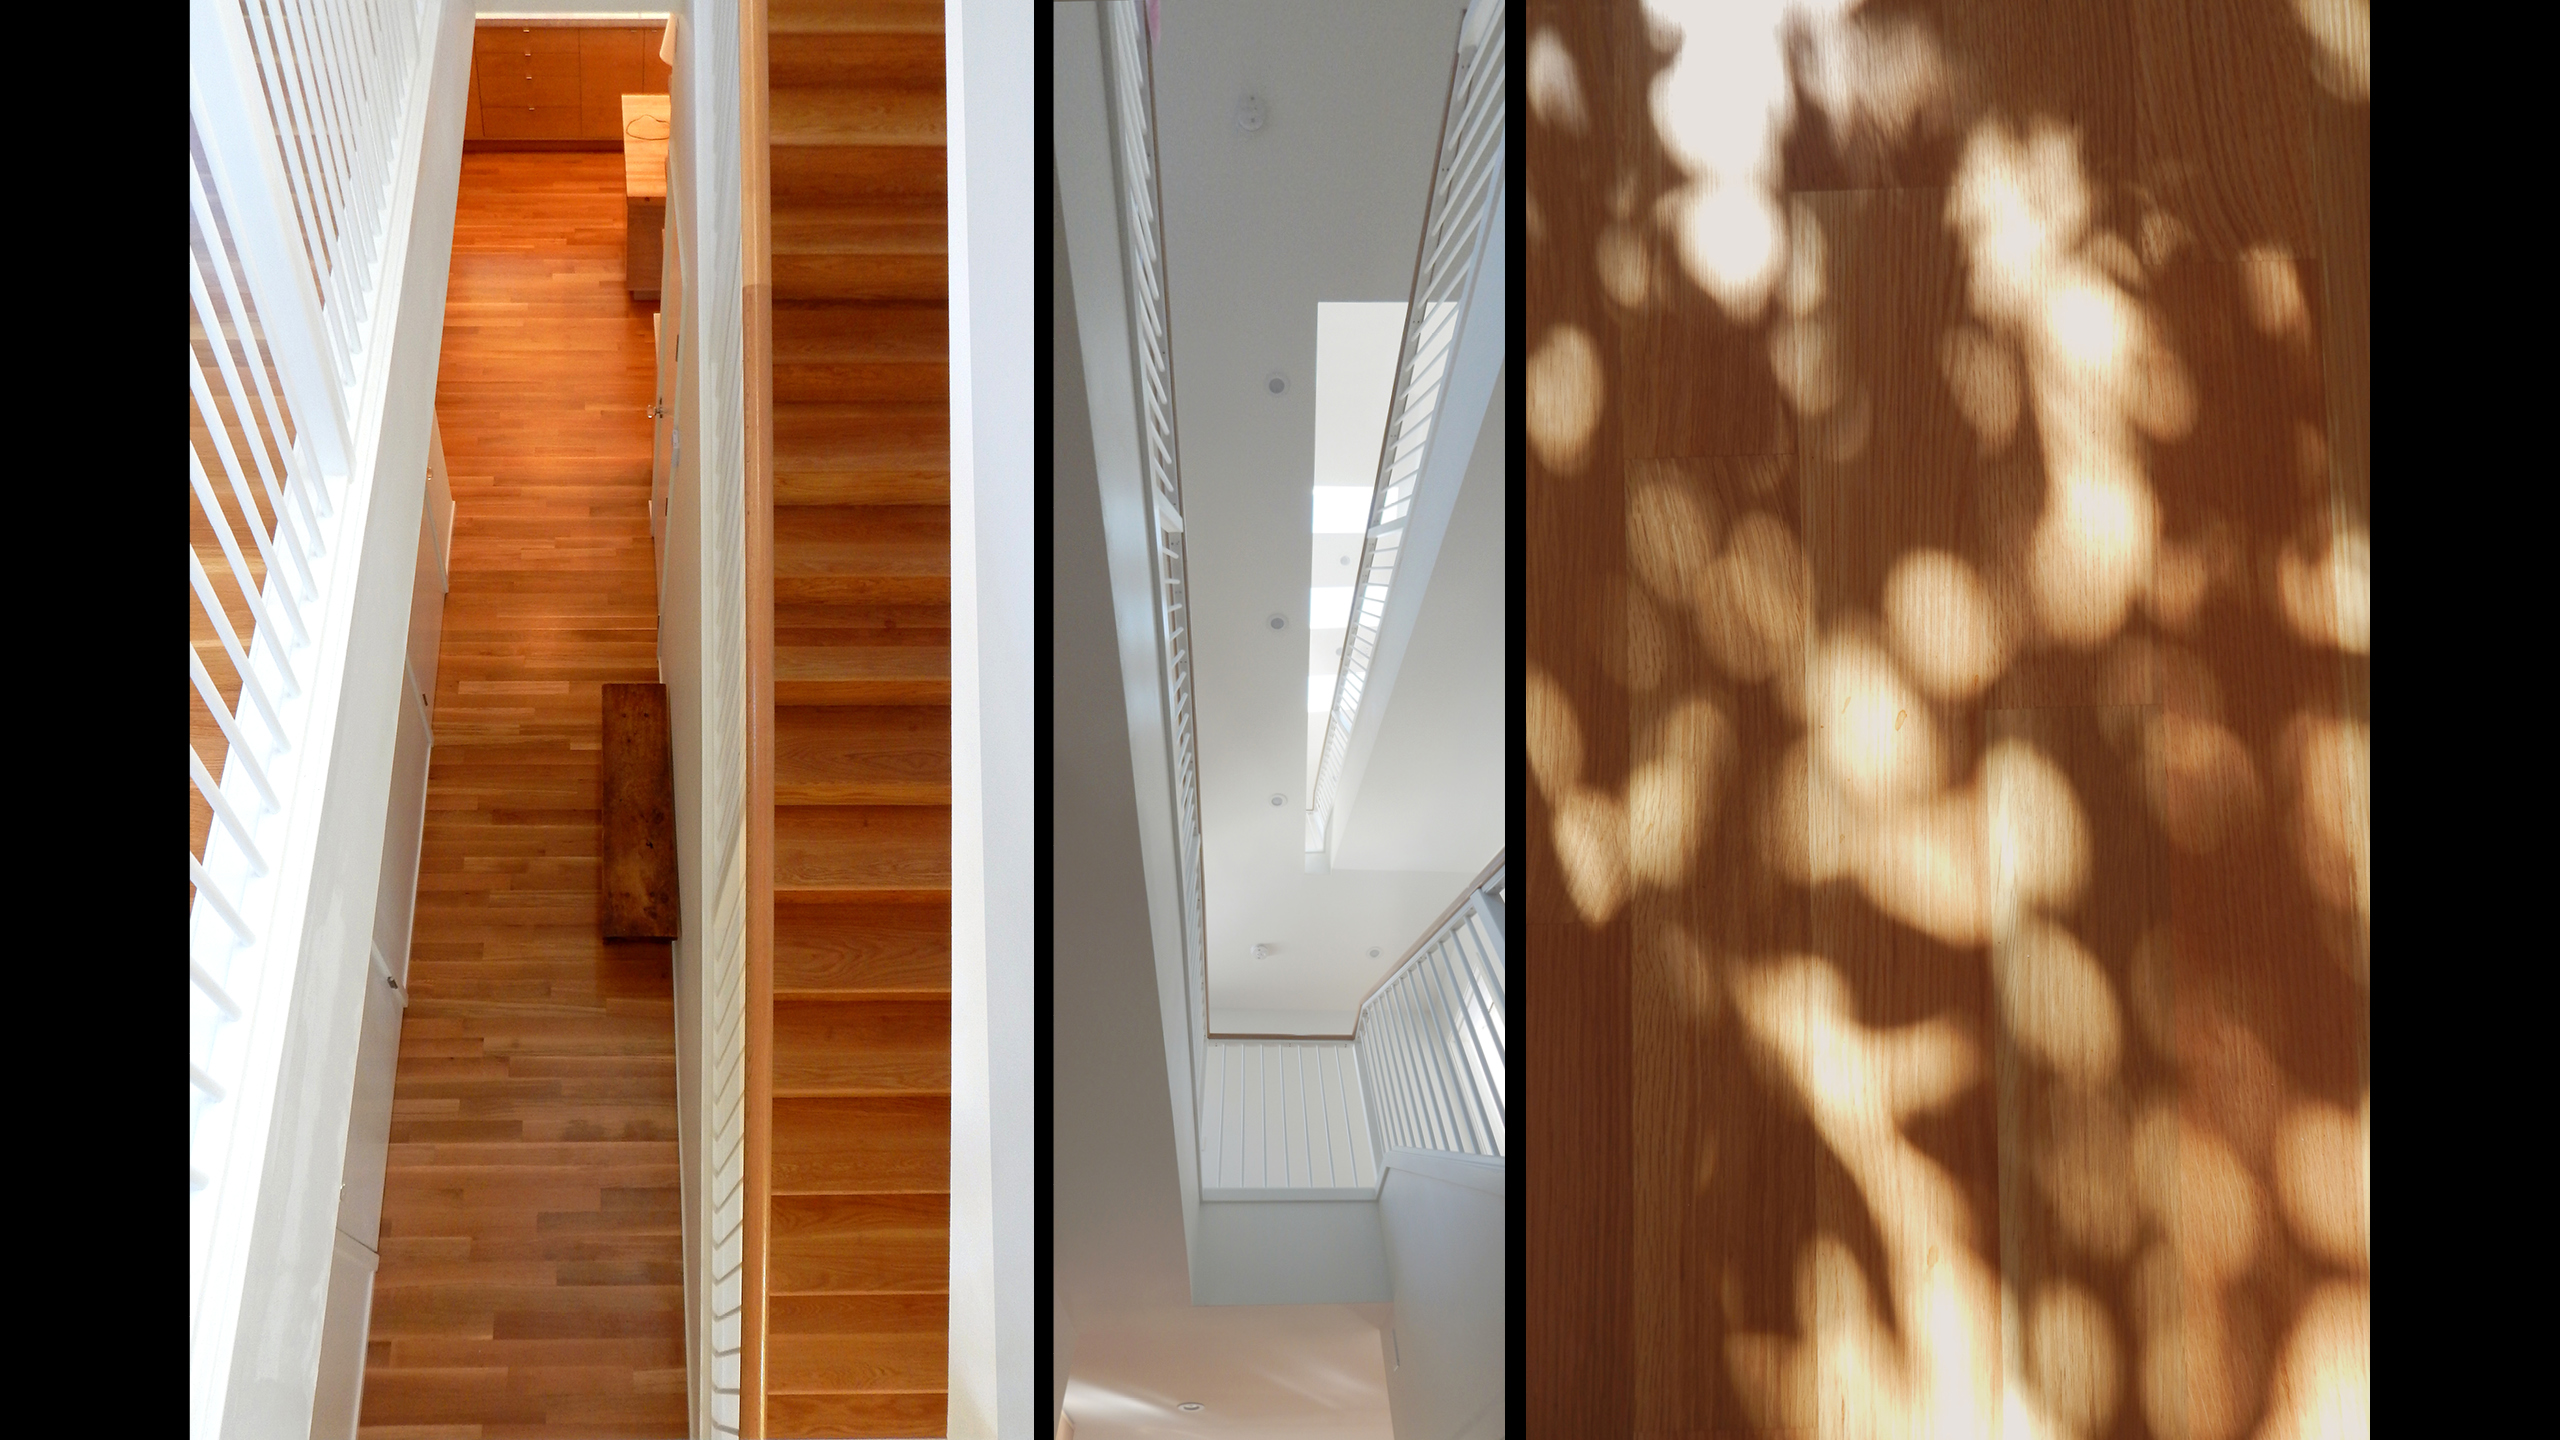 House C / image 1 / Houce C, design by OFFICE 52 Architecture